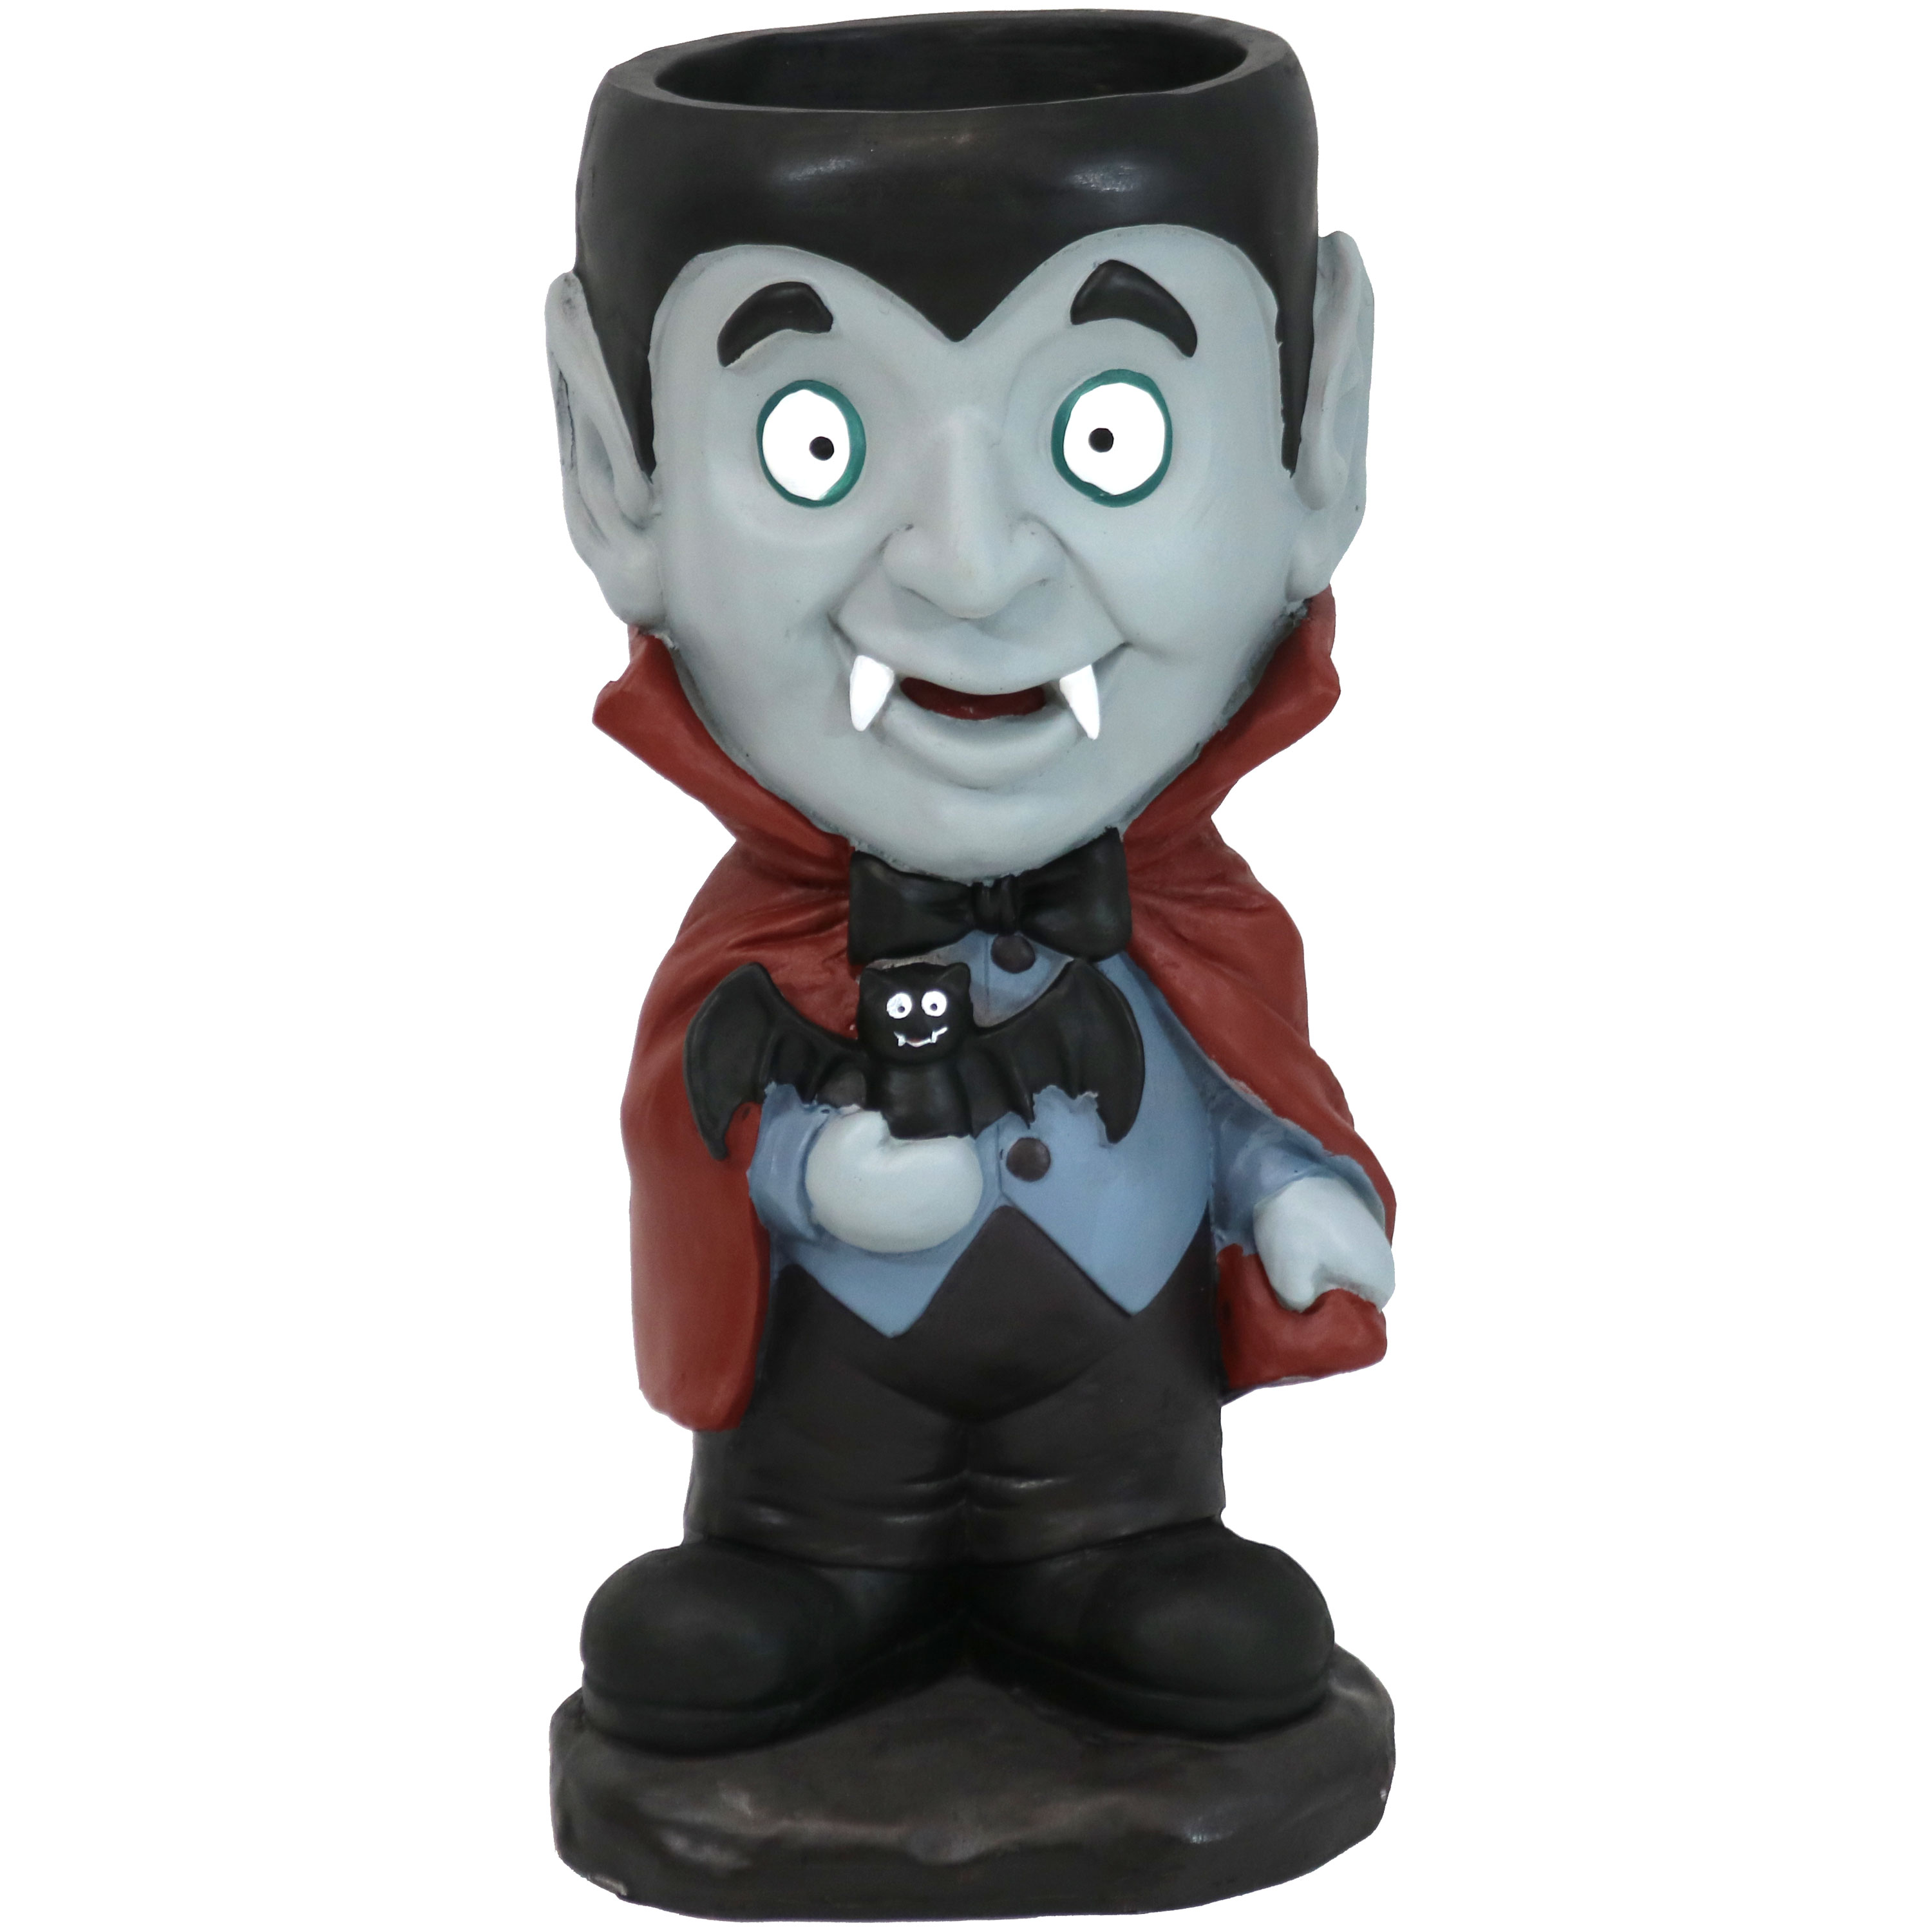 Count Dracula Vampire Halloween Statue Built In Candy Bowl Dish Tall Photo